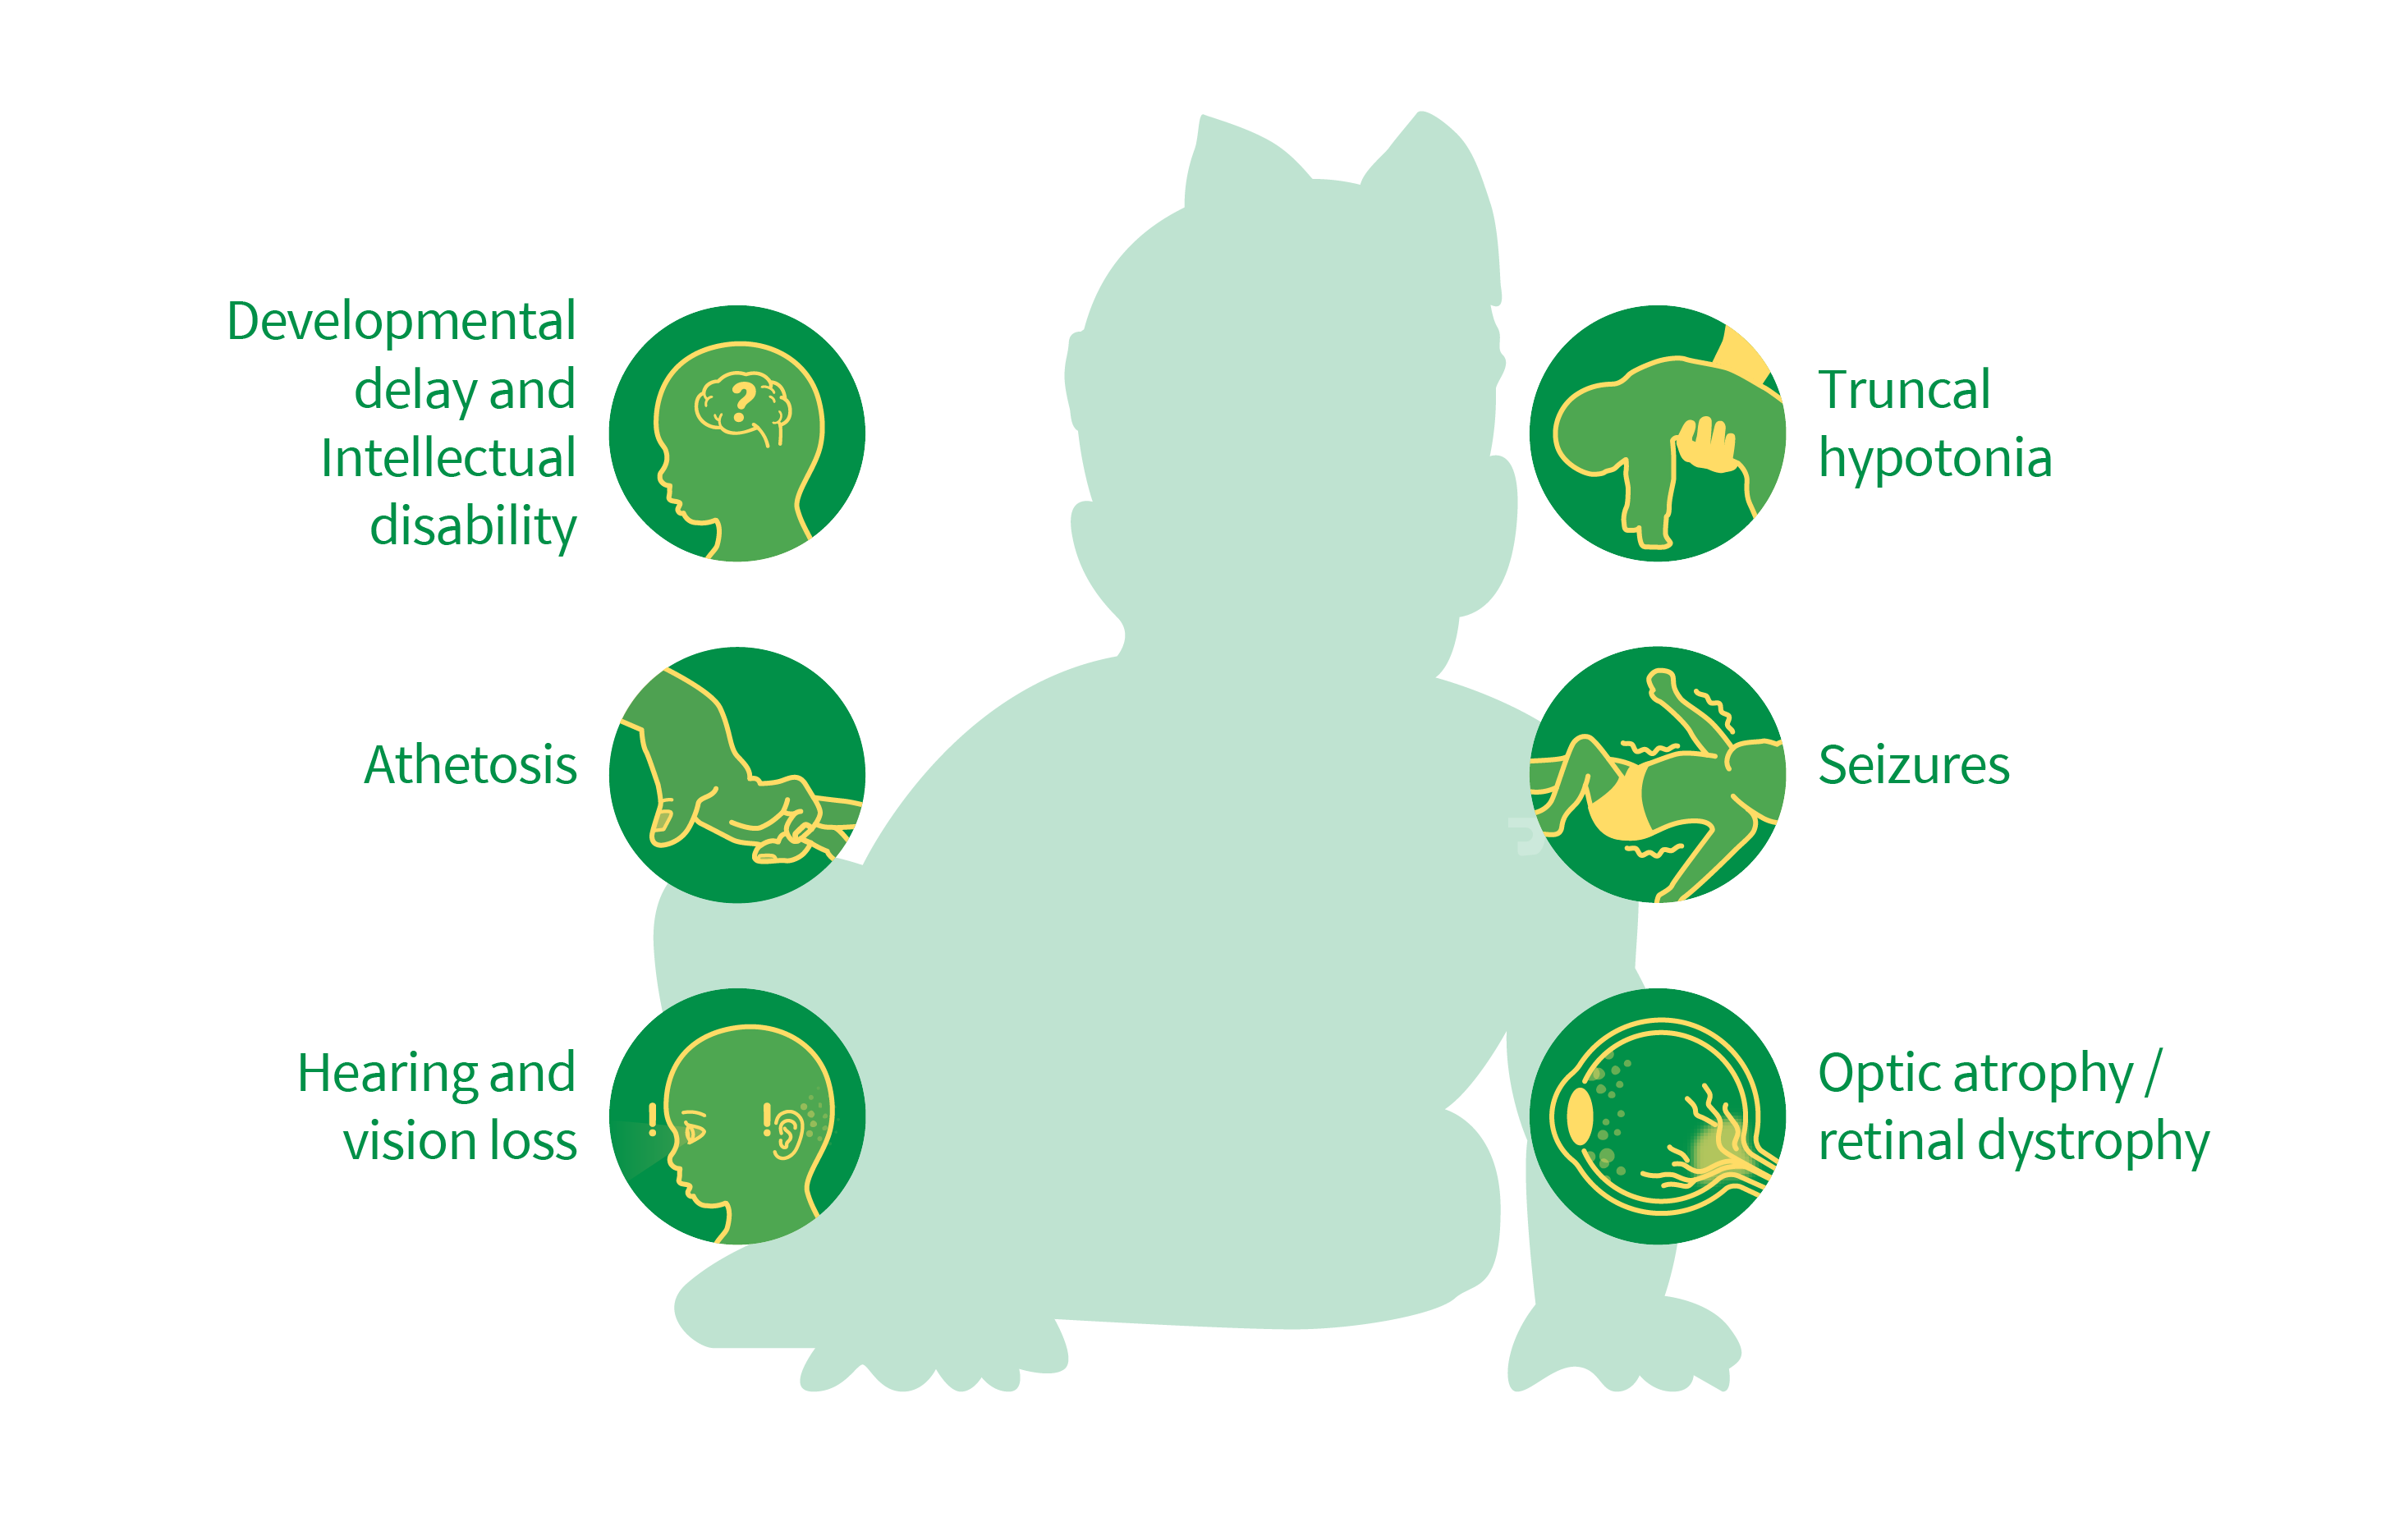 Seven symptoms of INFANTILE CEREBELLAR-RETINAL DEGENERATION: Developmental delay and intellectual disability, Truncal hypotonia, Athetosis, Seizures, Optic atrophy, Retinal dystrophy, Hearing and vision loss